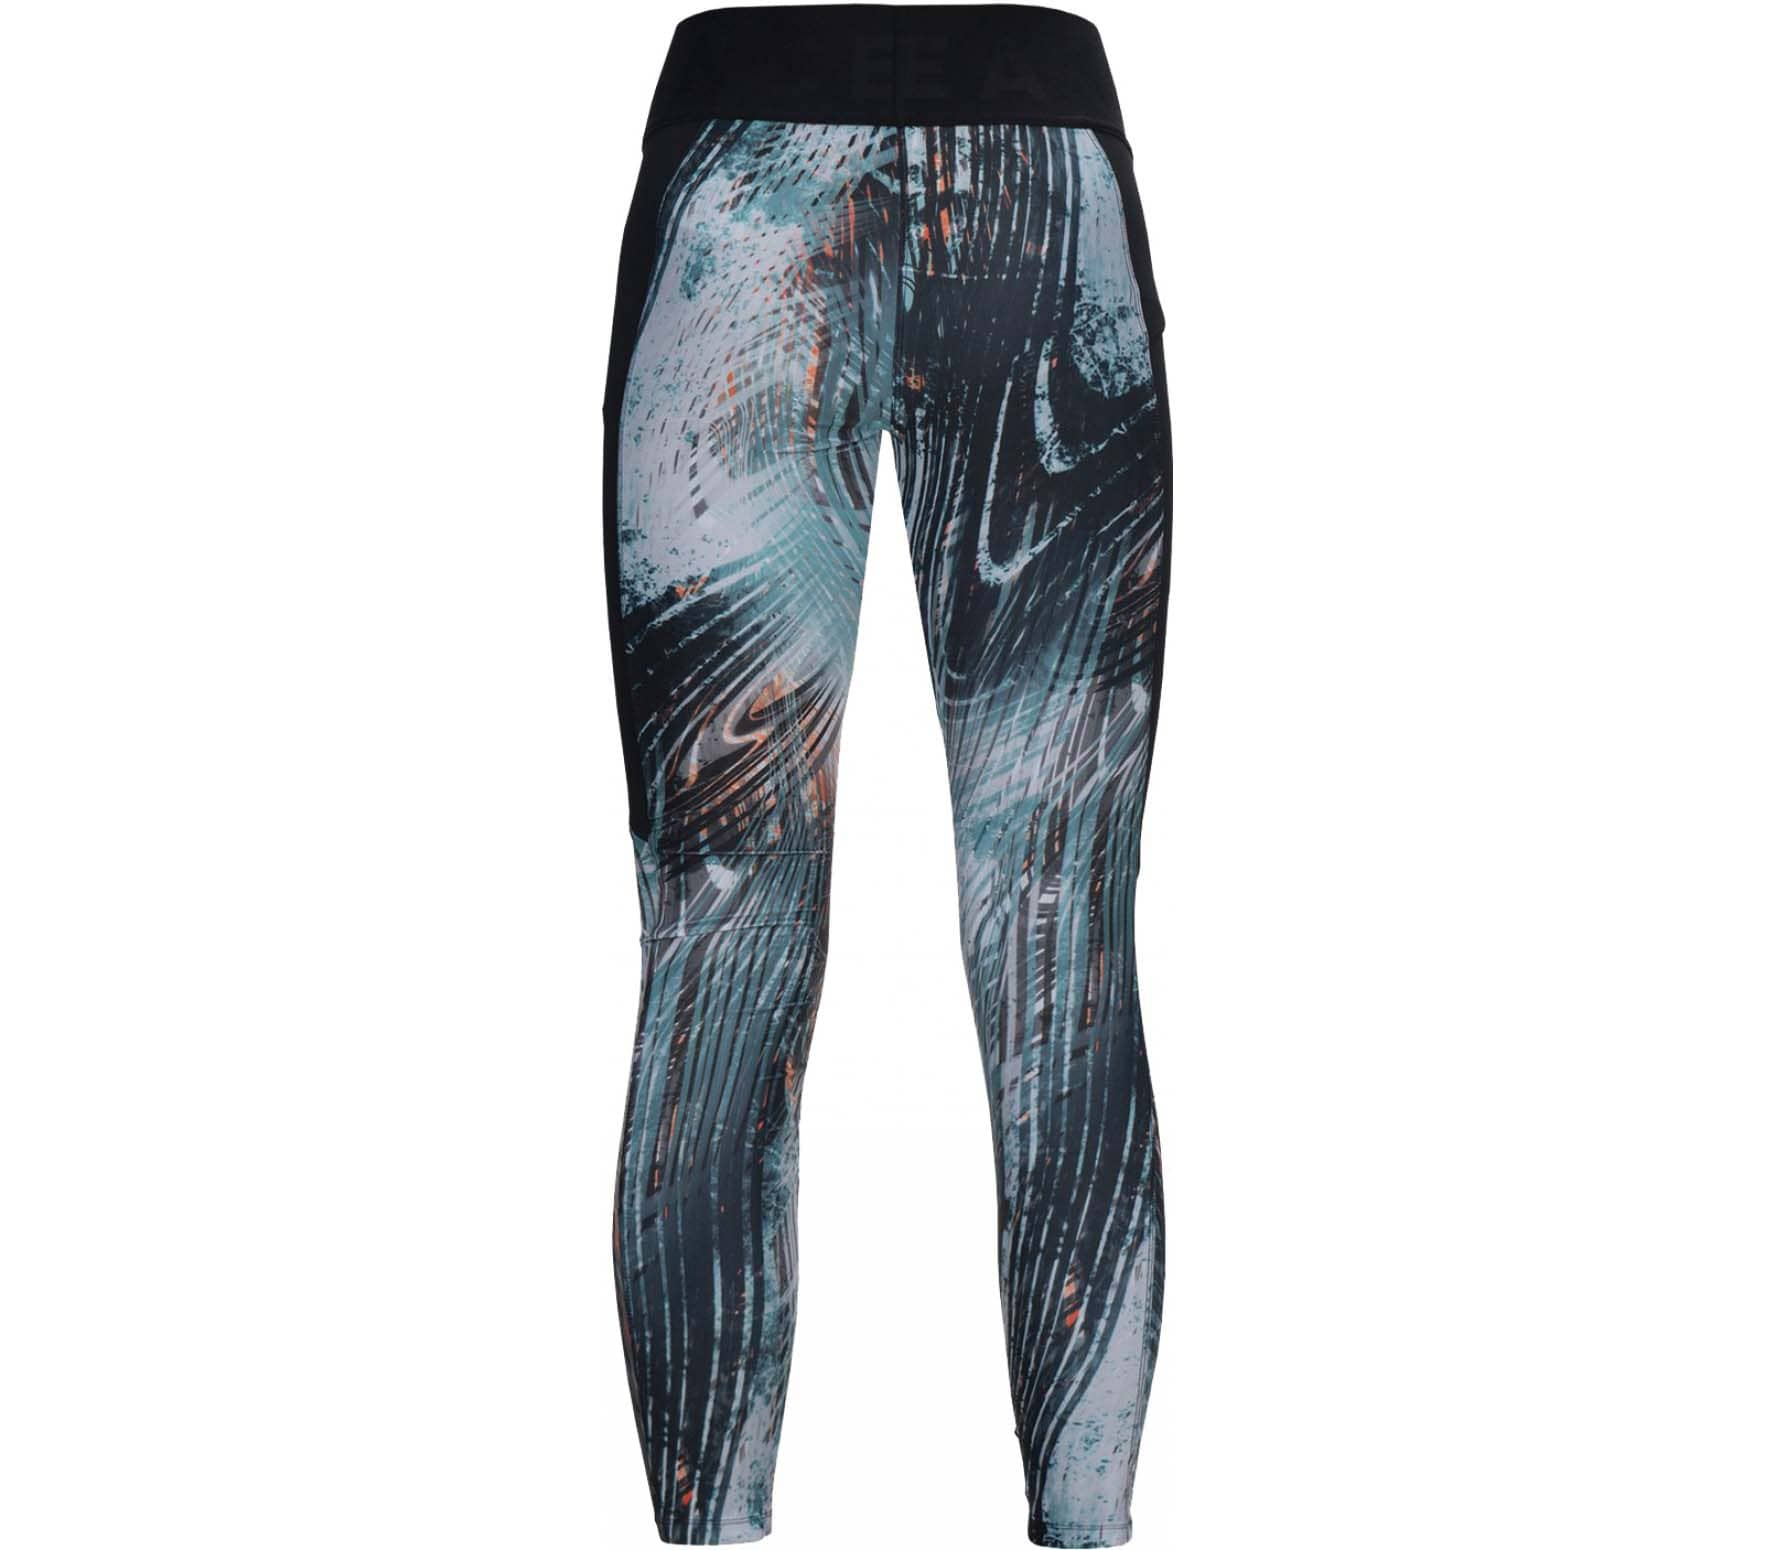 Peak Performance - Revil Print Damen Tight (mehrfarbig)